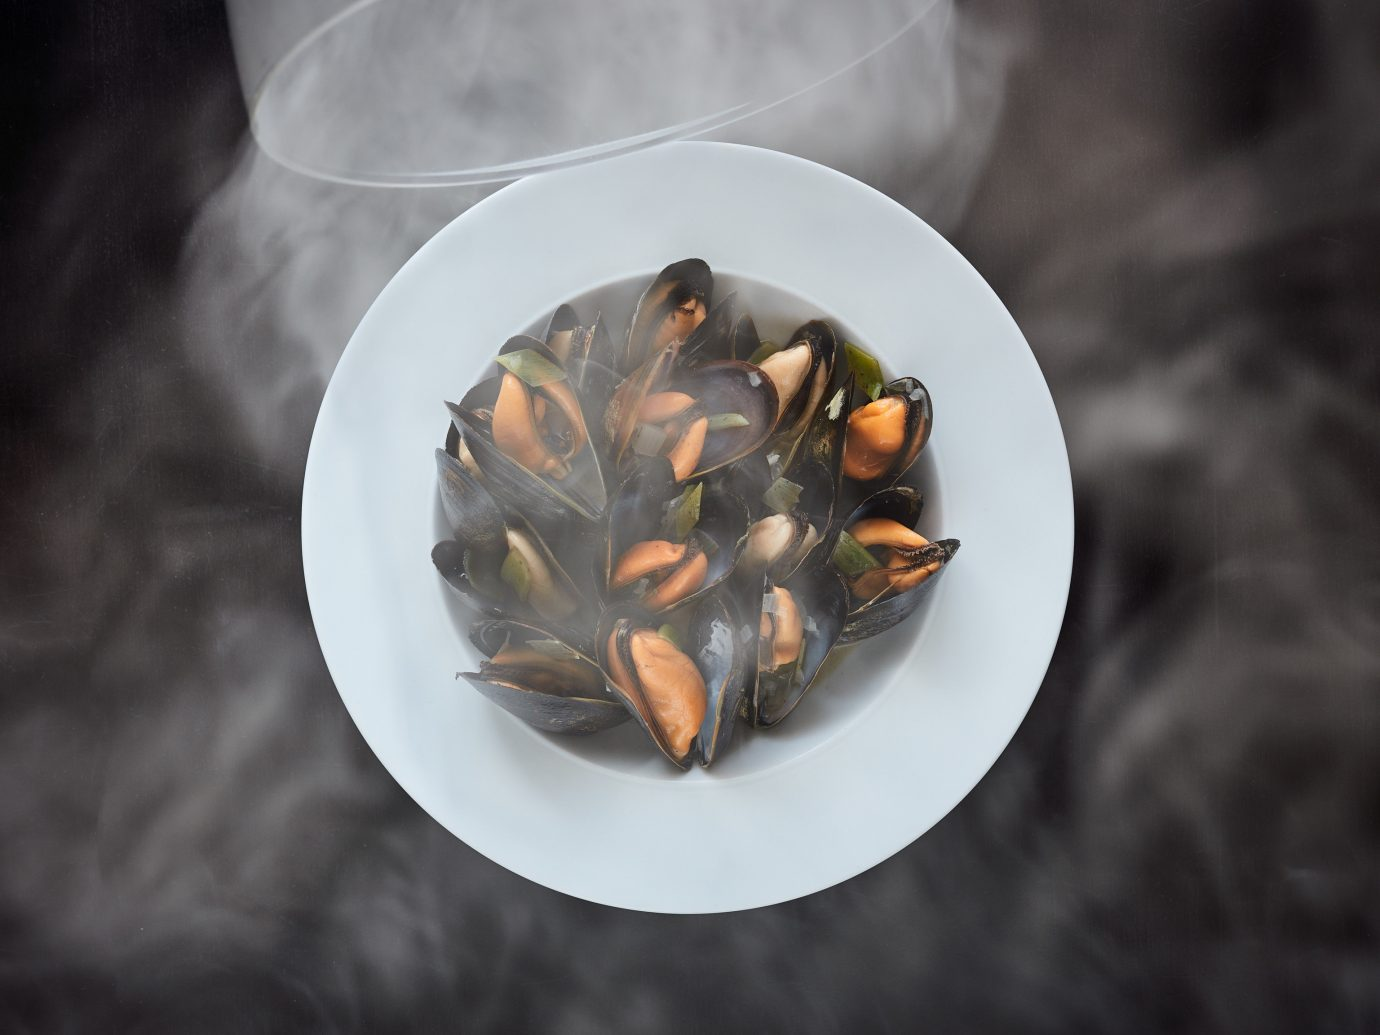 Food + Drink plate food mussel leaf close up macro photography white Seafood produce invertebrate flower clams oysters mussels and scallops vegetable sliced containing